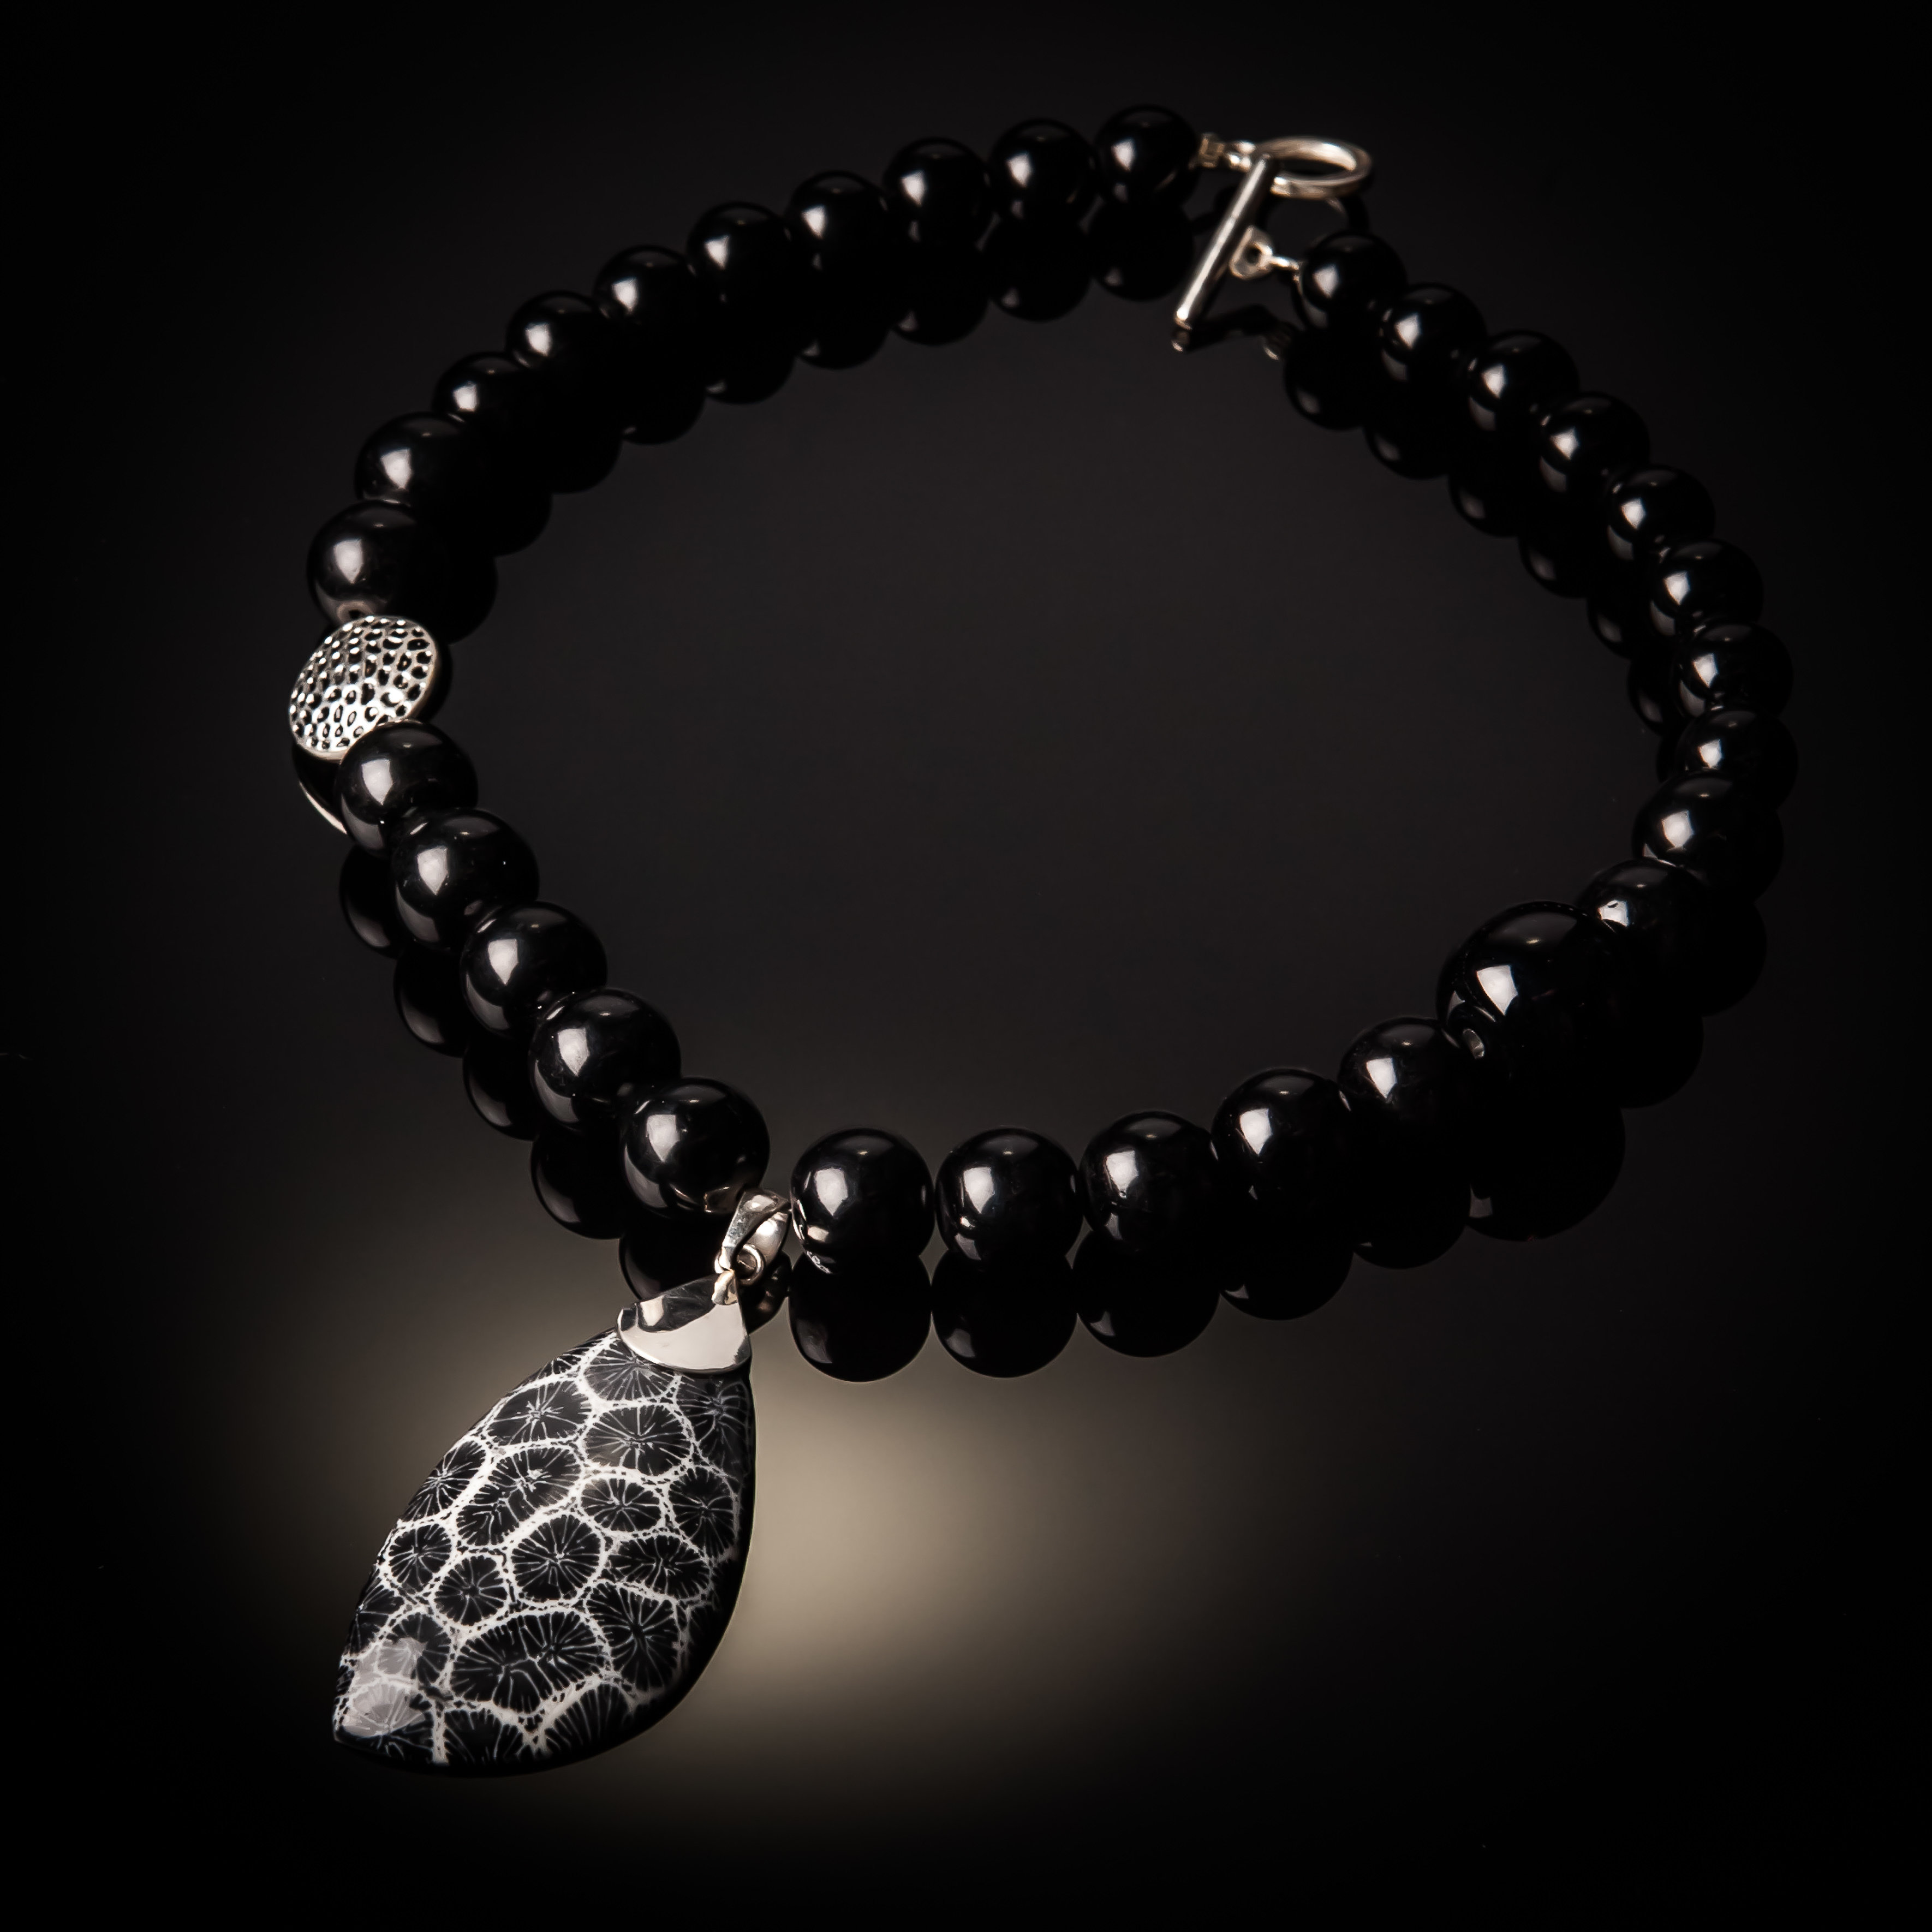 Black Coral Pendant With Black Agate Beads. NK-801